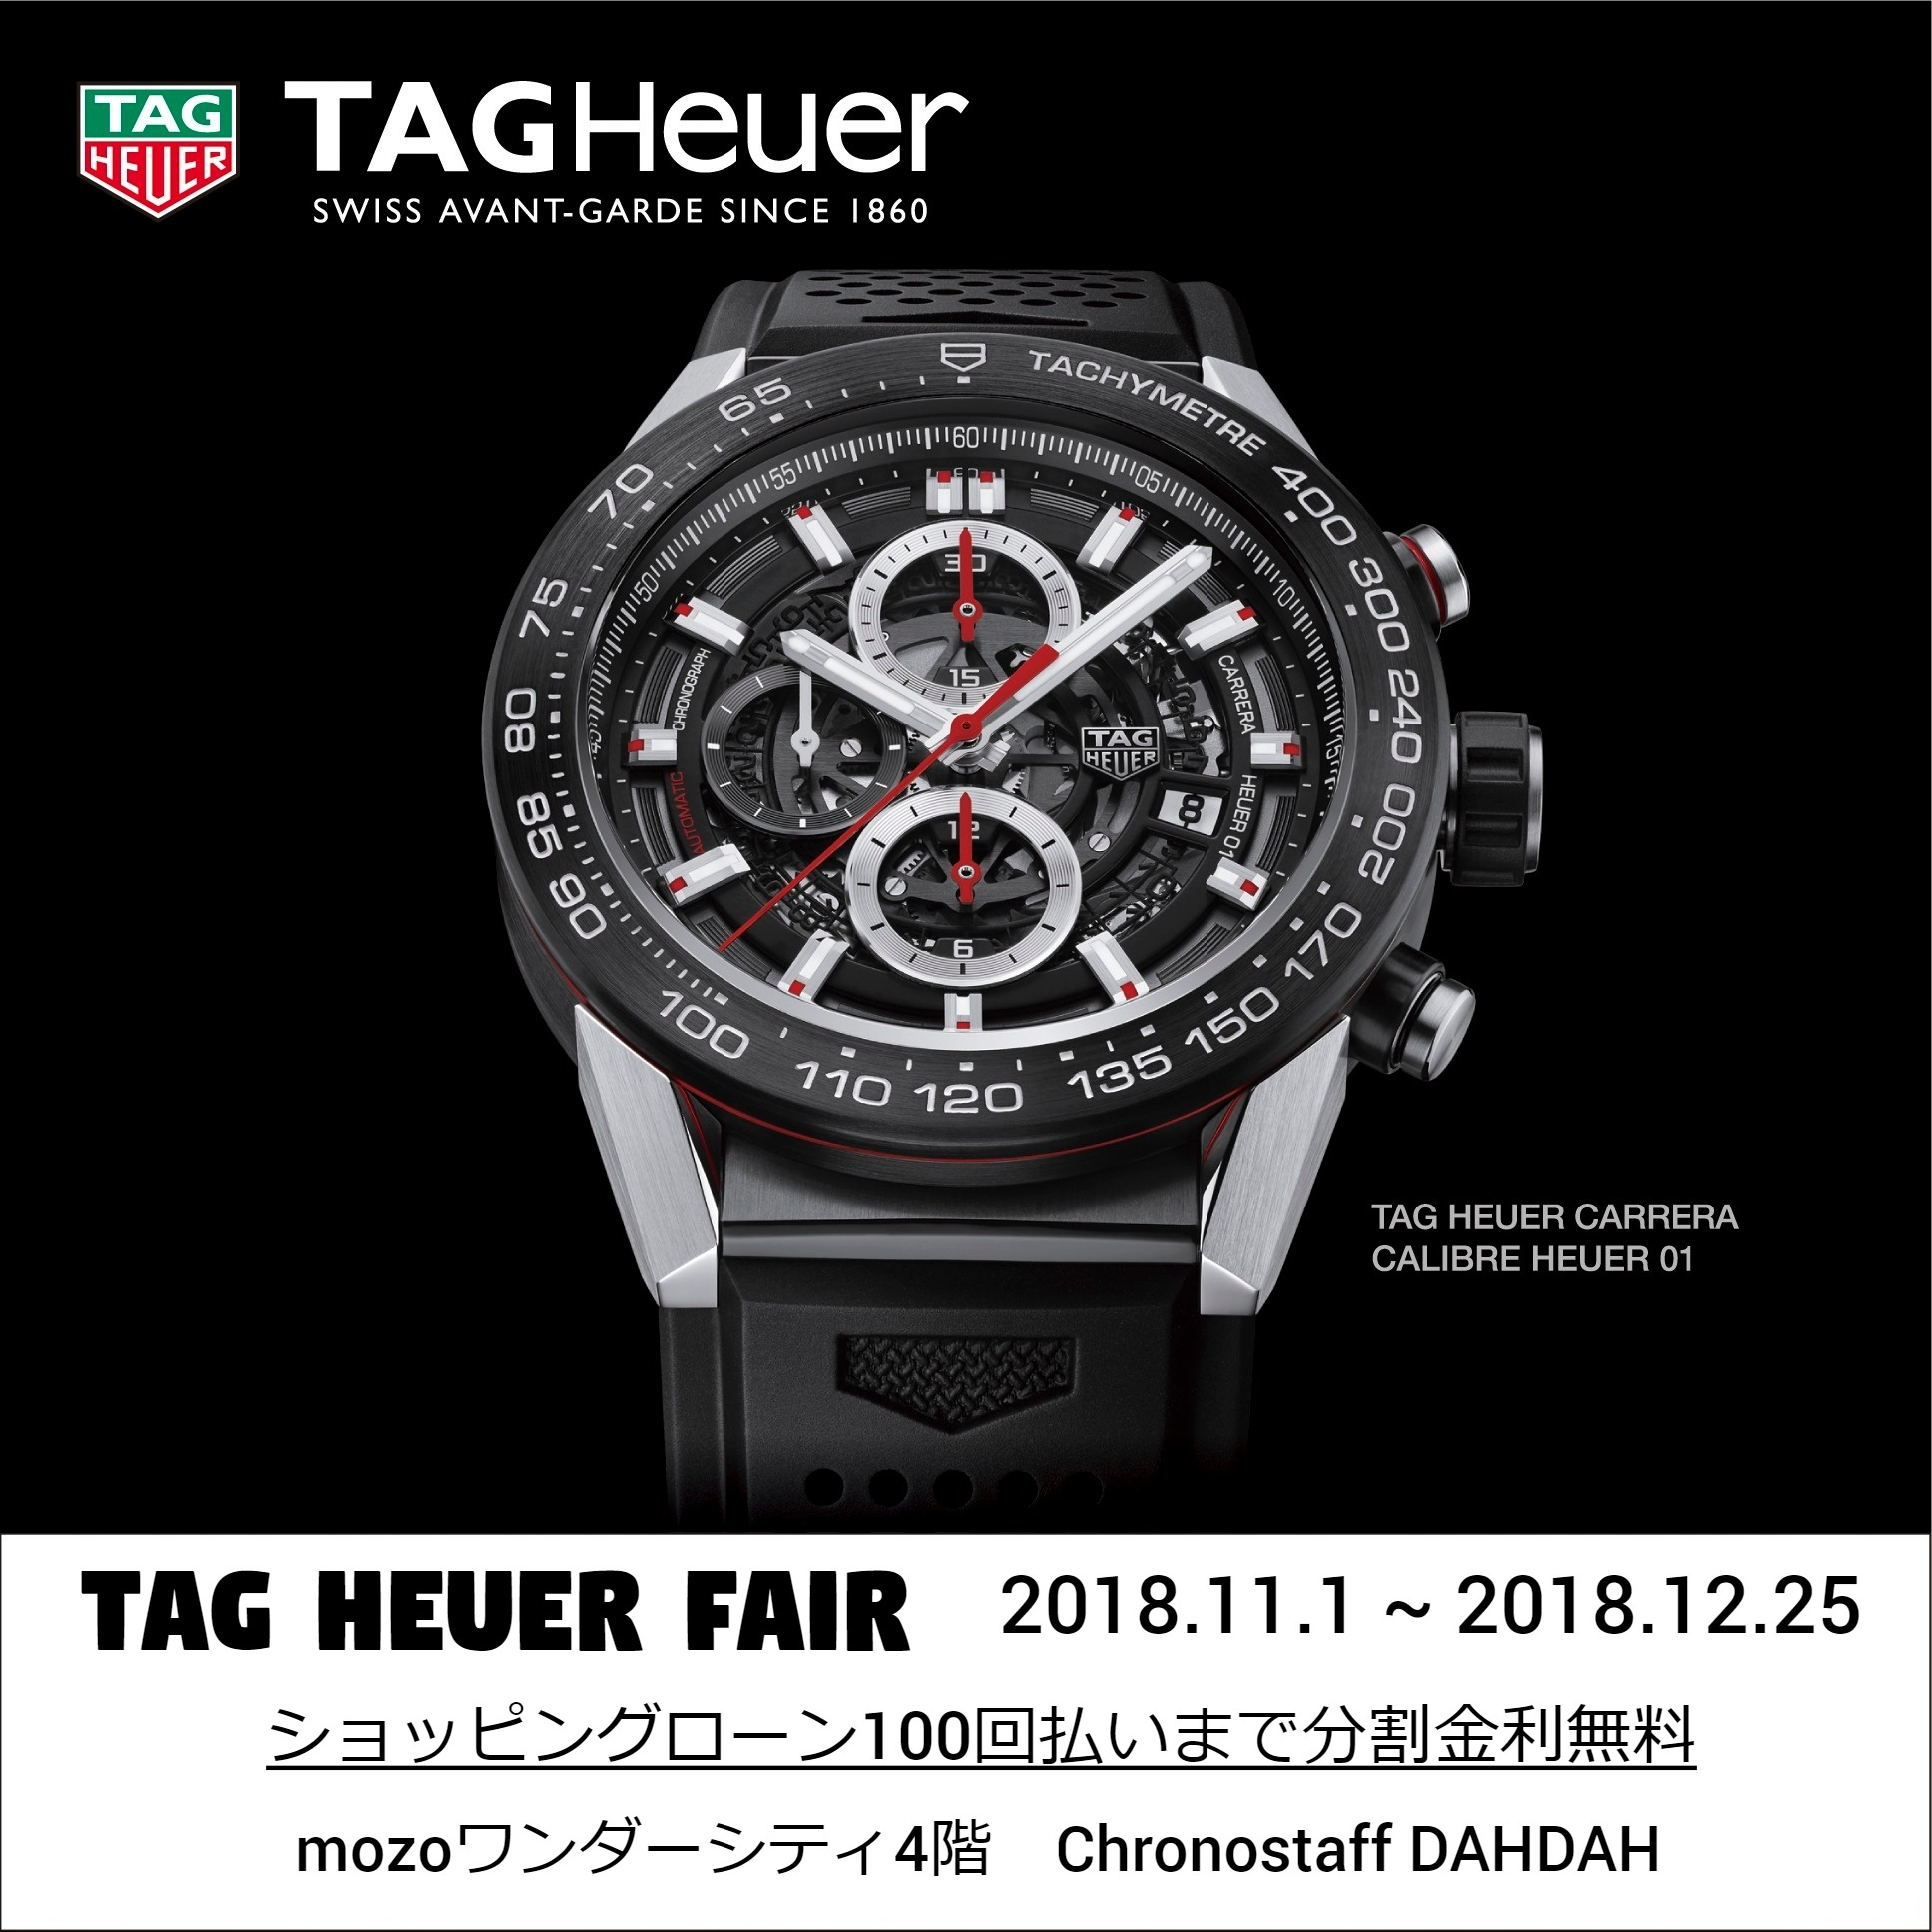 【TAG Heuer Fair】12月25日まで